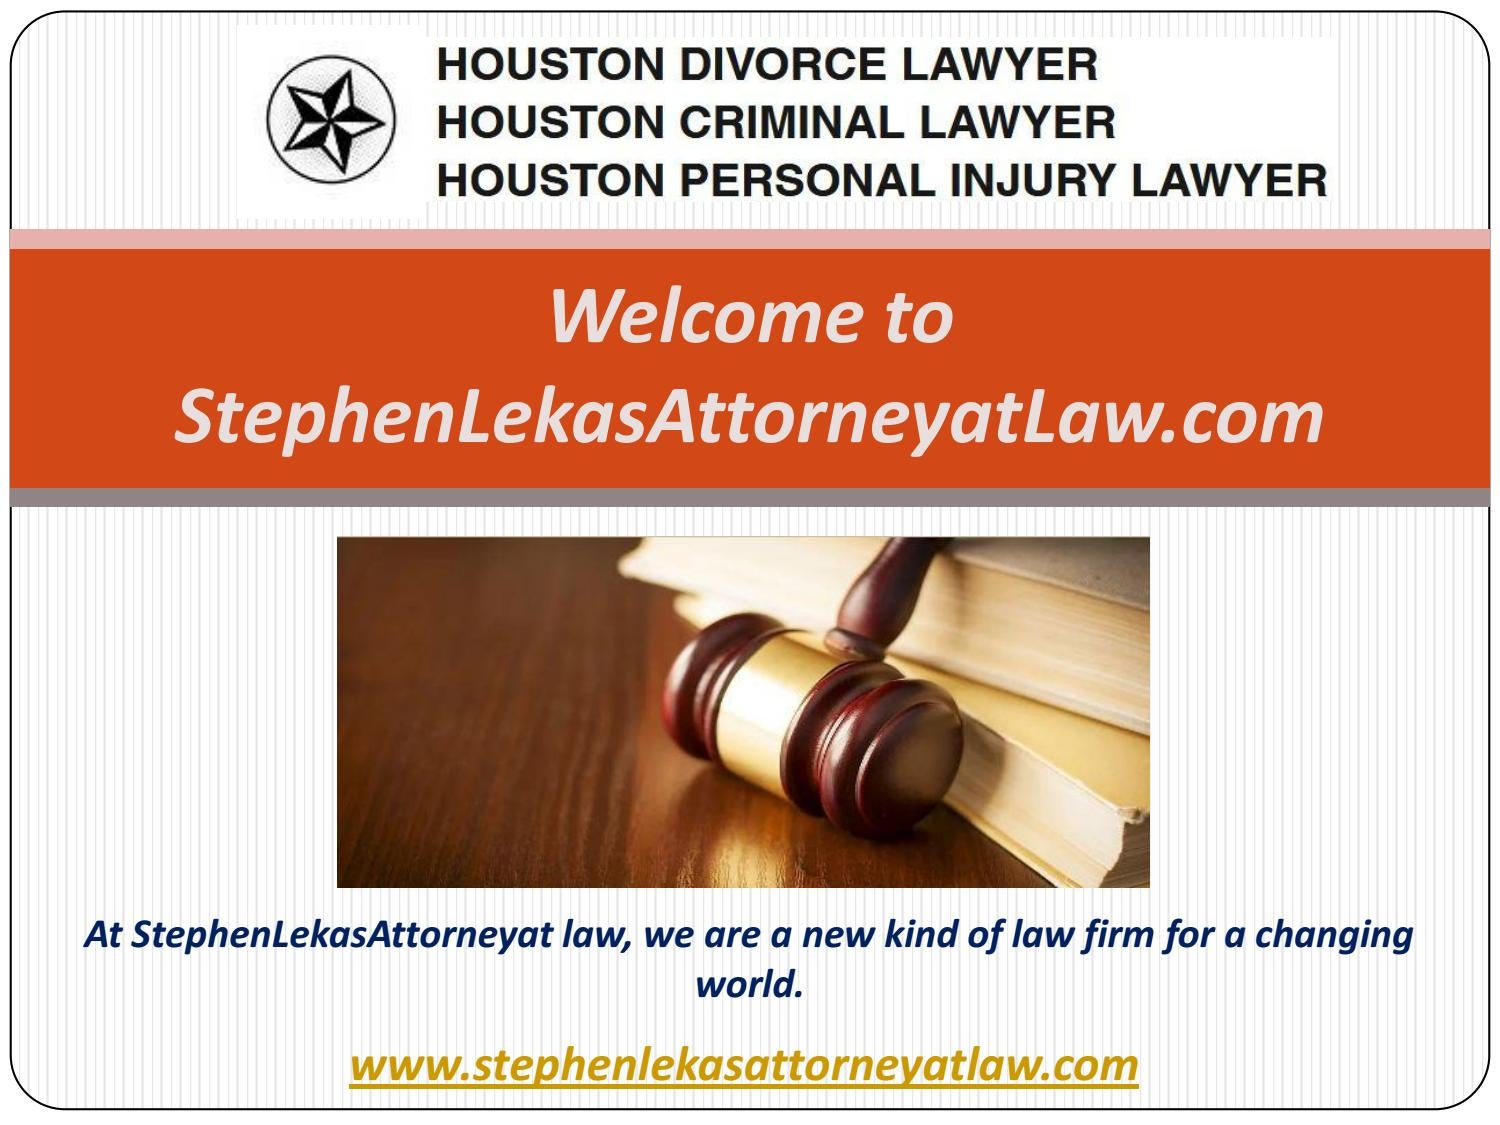 Settle Your Divorce Cases with Our Best Divorce Lawyers in Houston